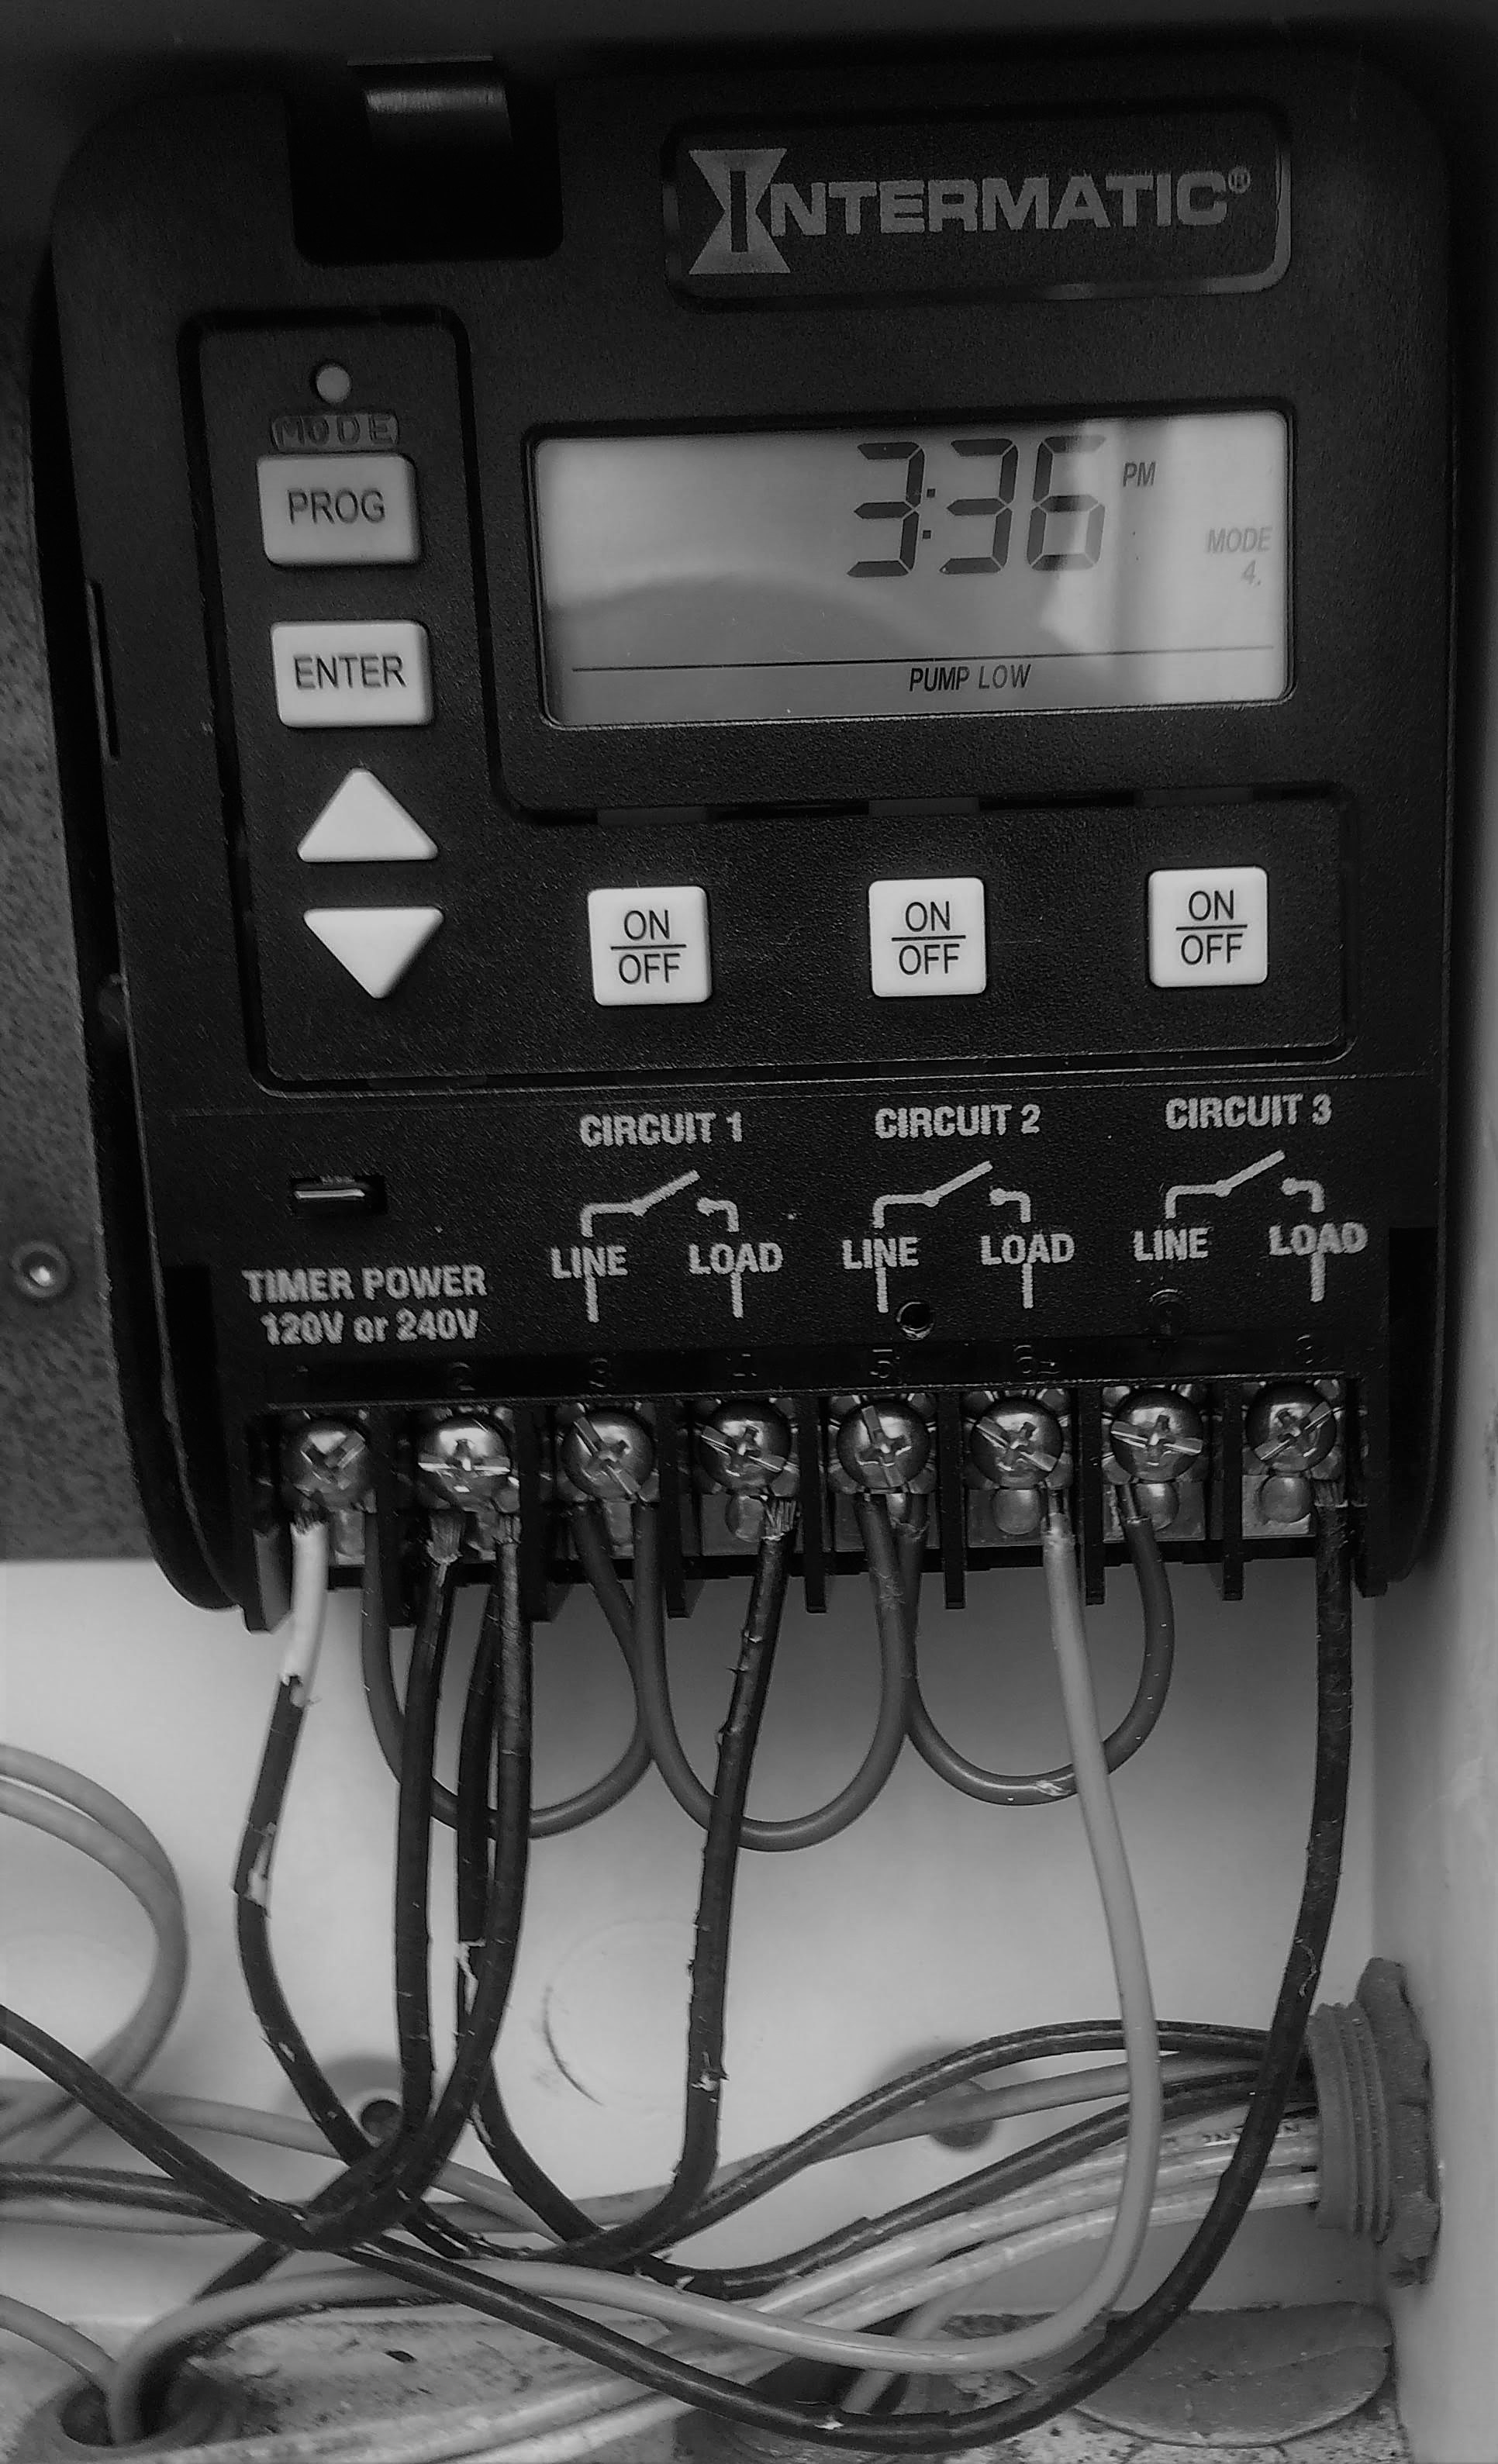 Crystal Clear Pools Jacksonville Fl Motor Speed Controller Circuit Electronic How To Connect The Intermatic Digital Timer Pe153